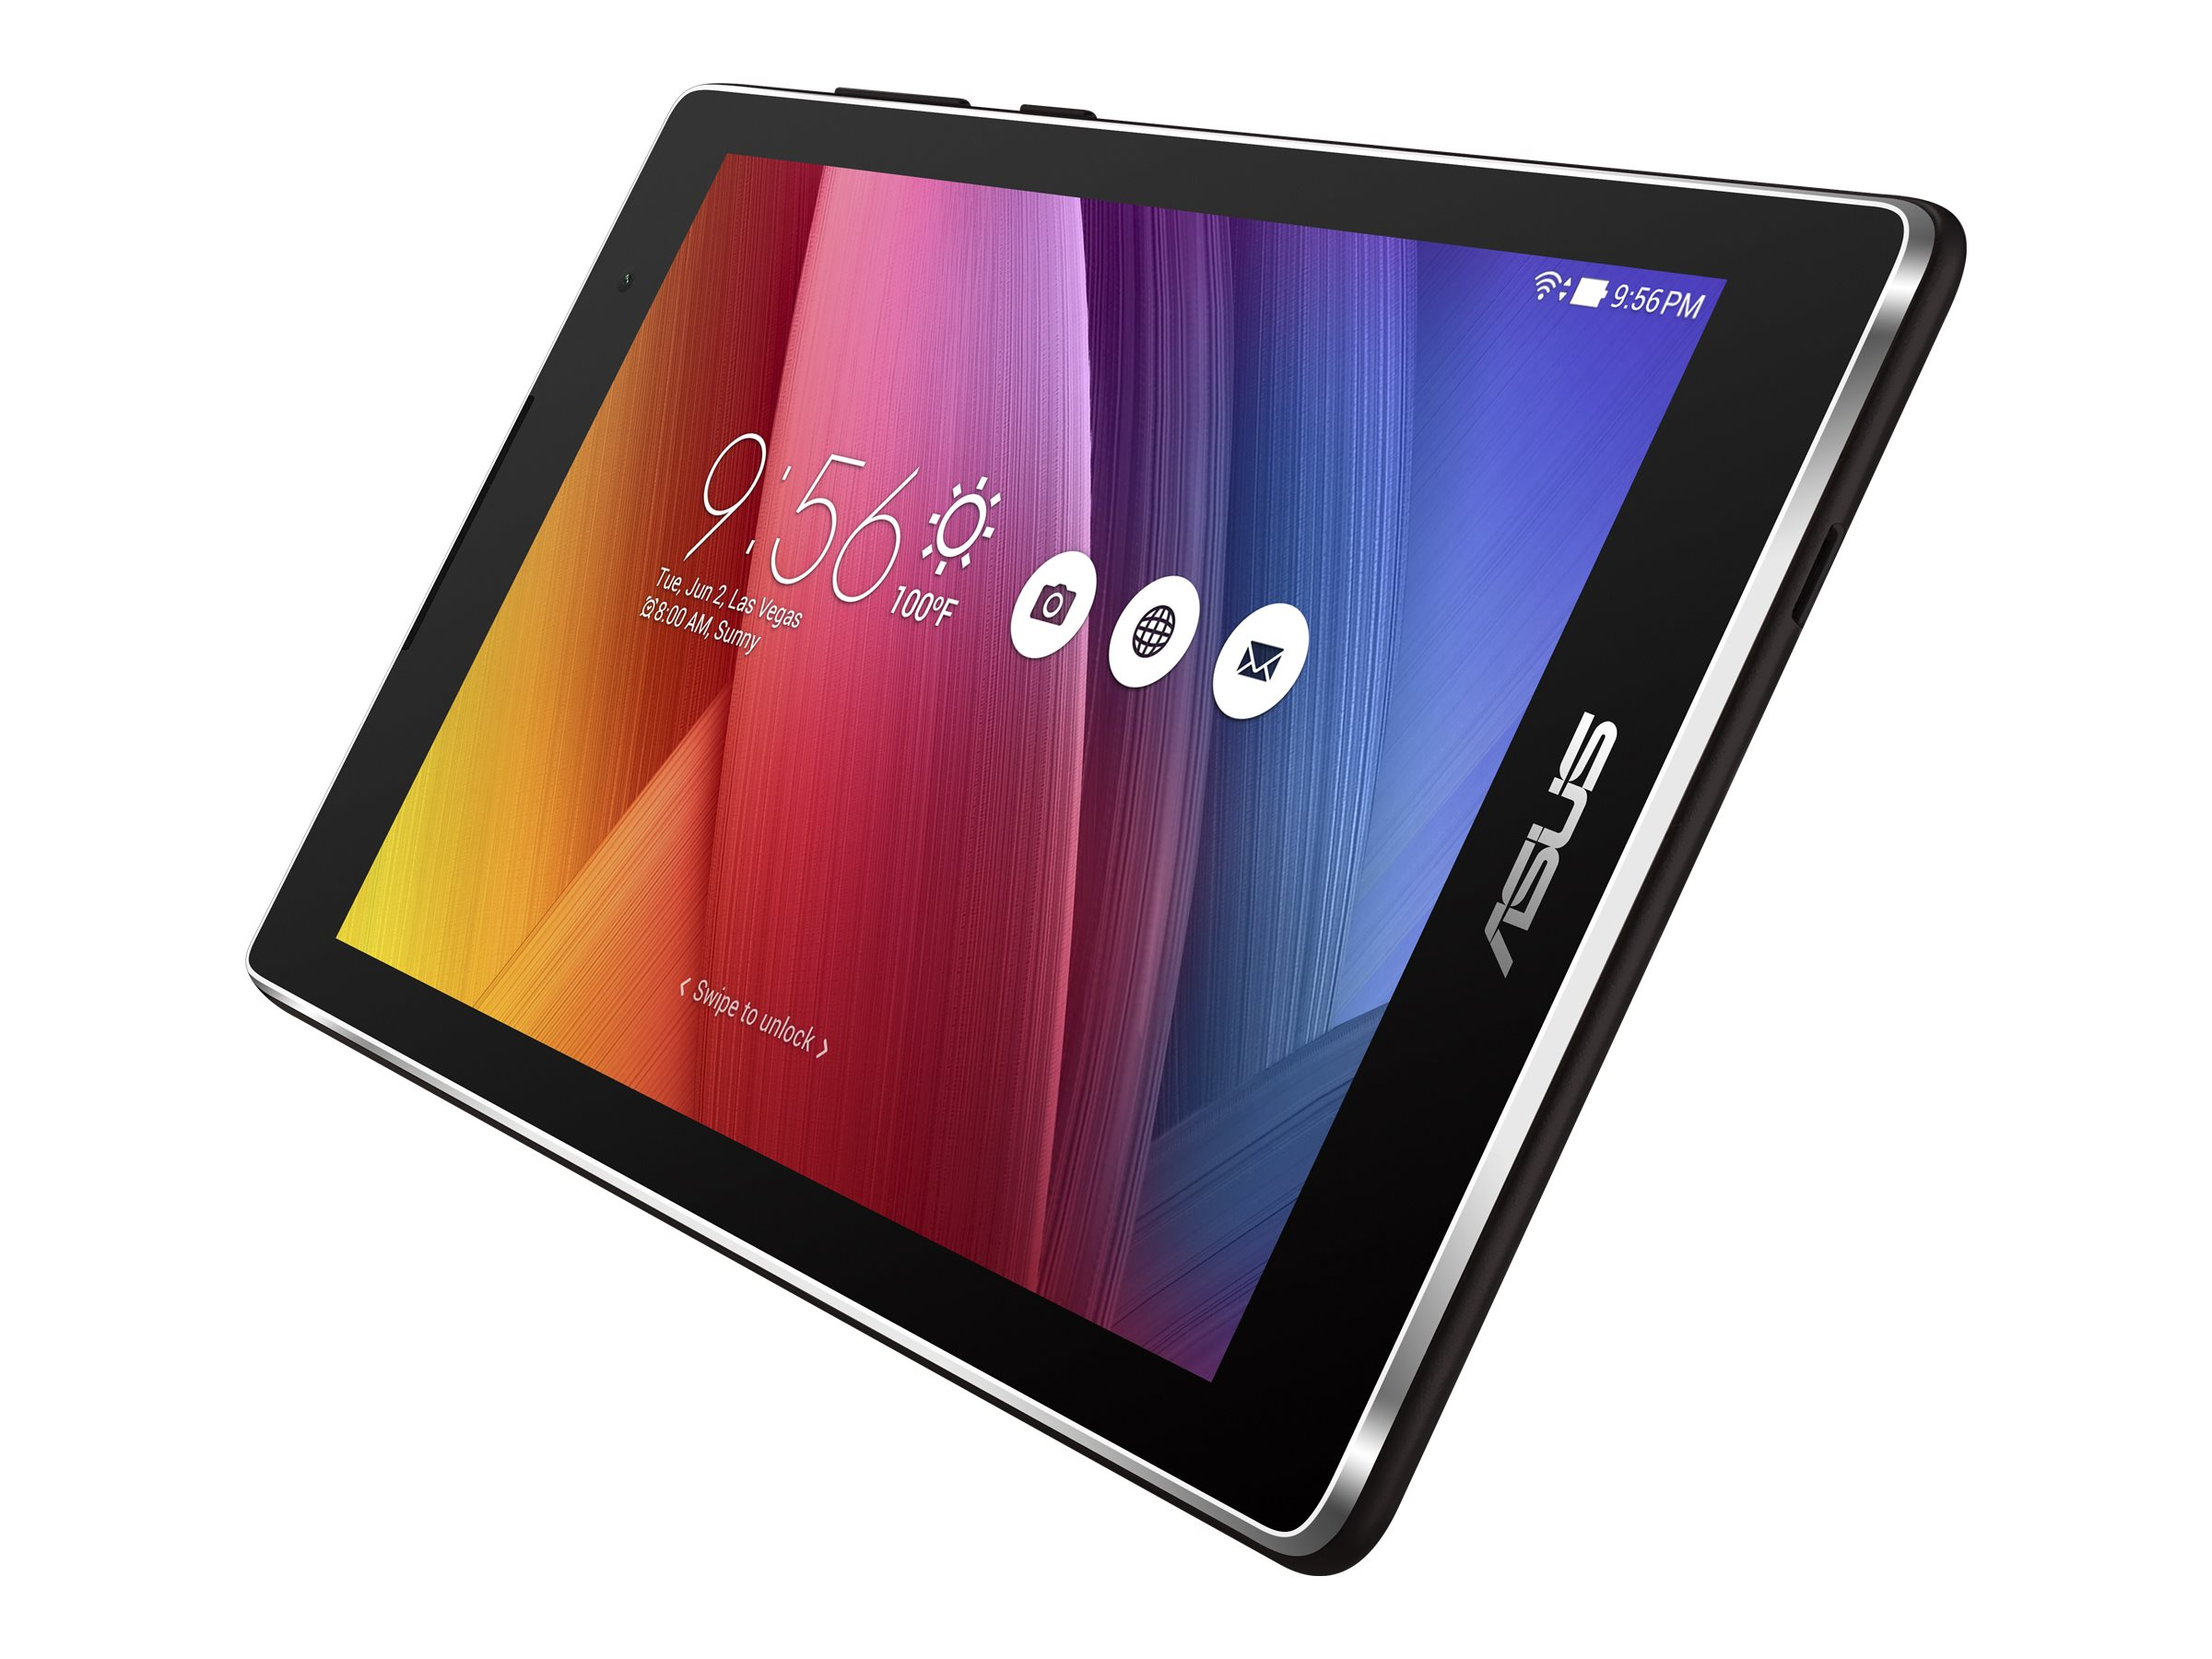 Asus Tablet x3 C3200 1GB 16GB 7 Android, 90NP01Z1-M00870